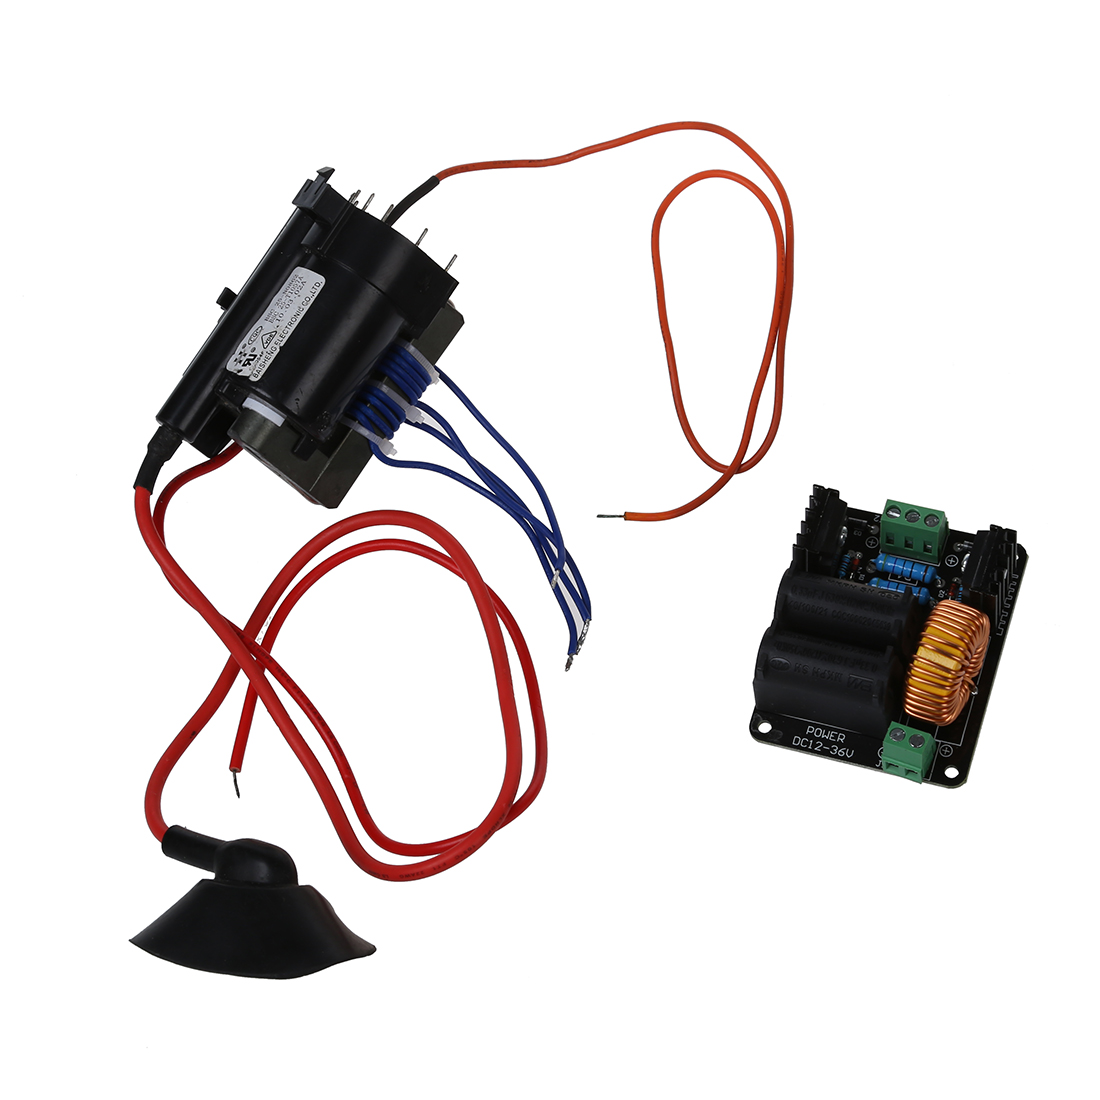 medium resolution of 12v 36v zvs tesla coil flyback driver marx generator jacob s ladder ignition coil in signal generators from tools on aliexpress com alibaba group